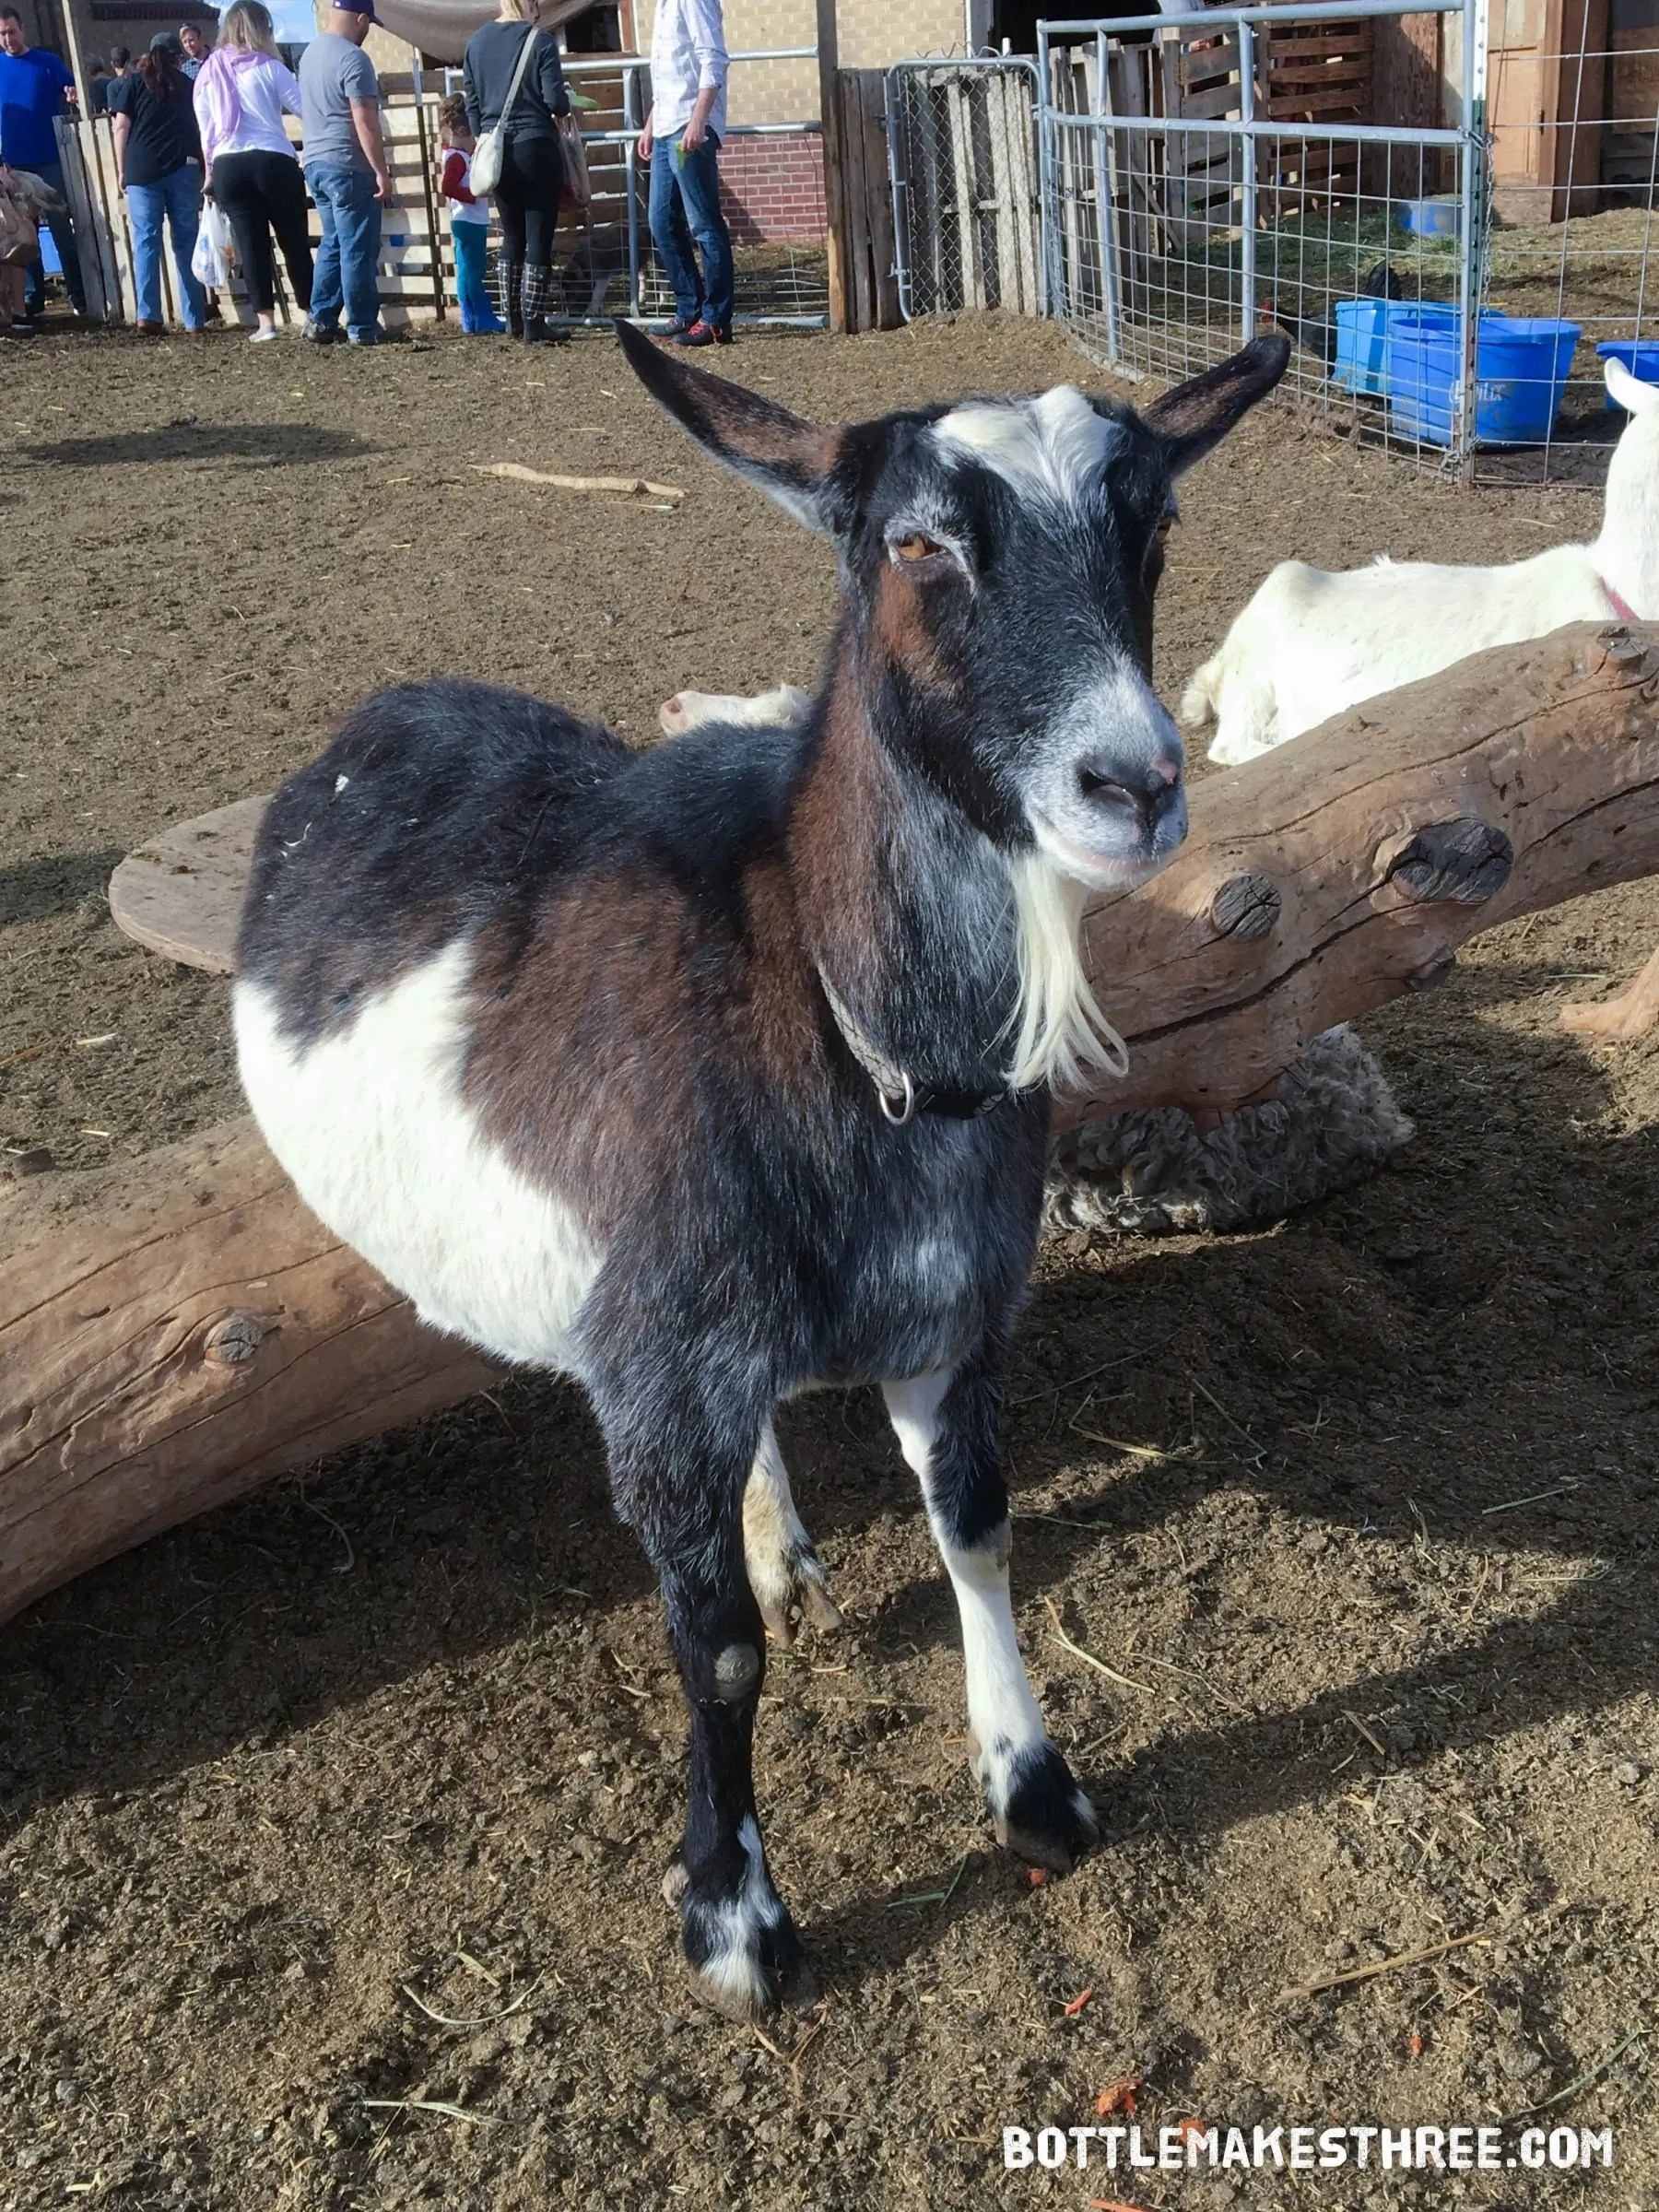 Tripod, the 3-legged goat. At the Happy Thanks-Living at Broken Shovels Farm (Henderson, Colorado) | BottleMakesThree.com